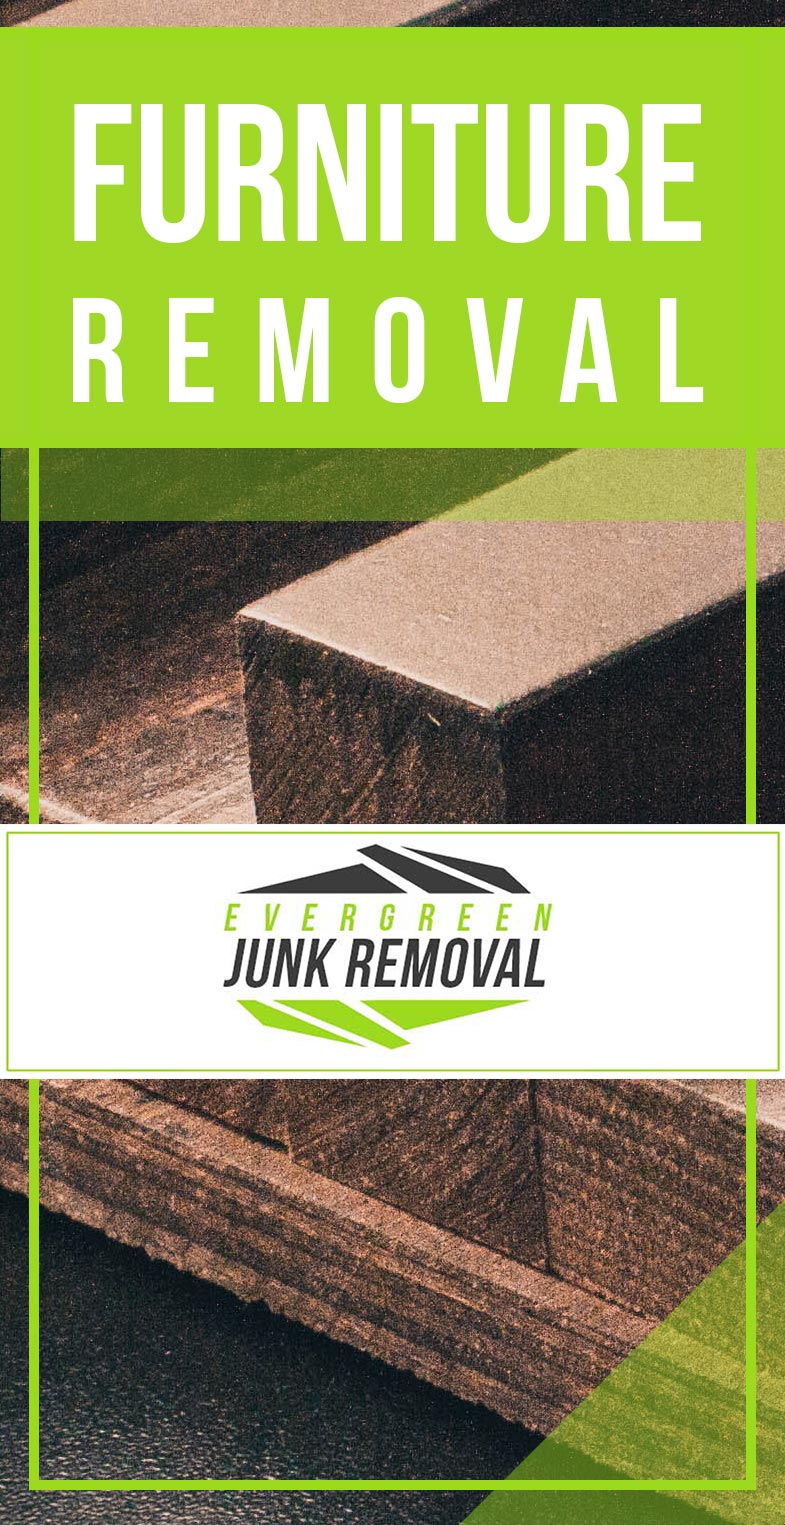 Junk Removal South Palm Beach Furniture Removal